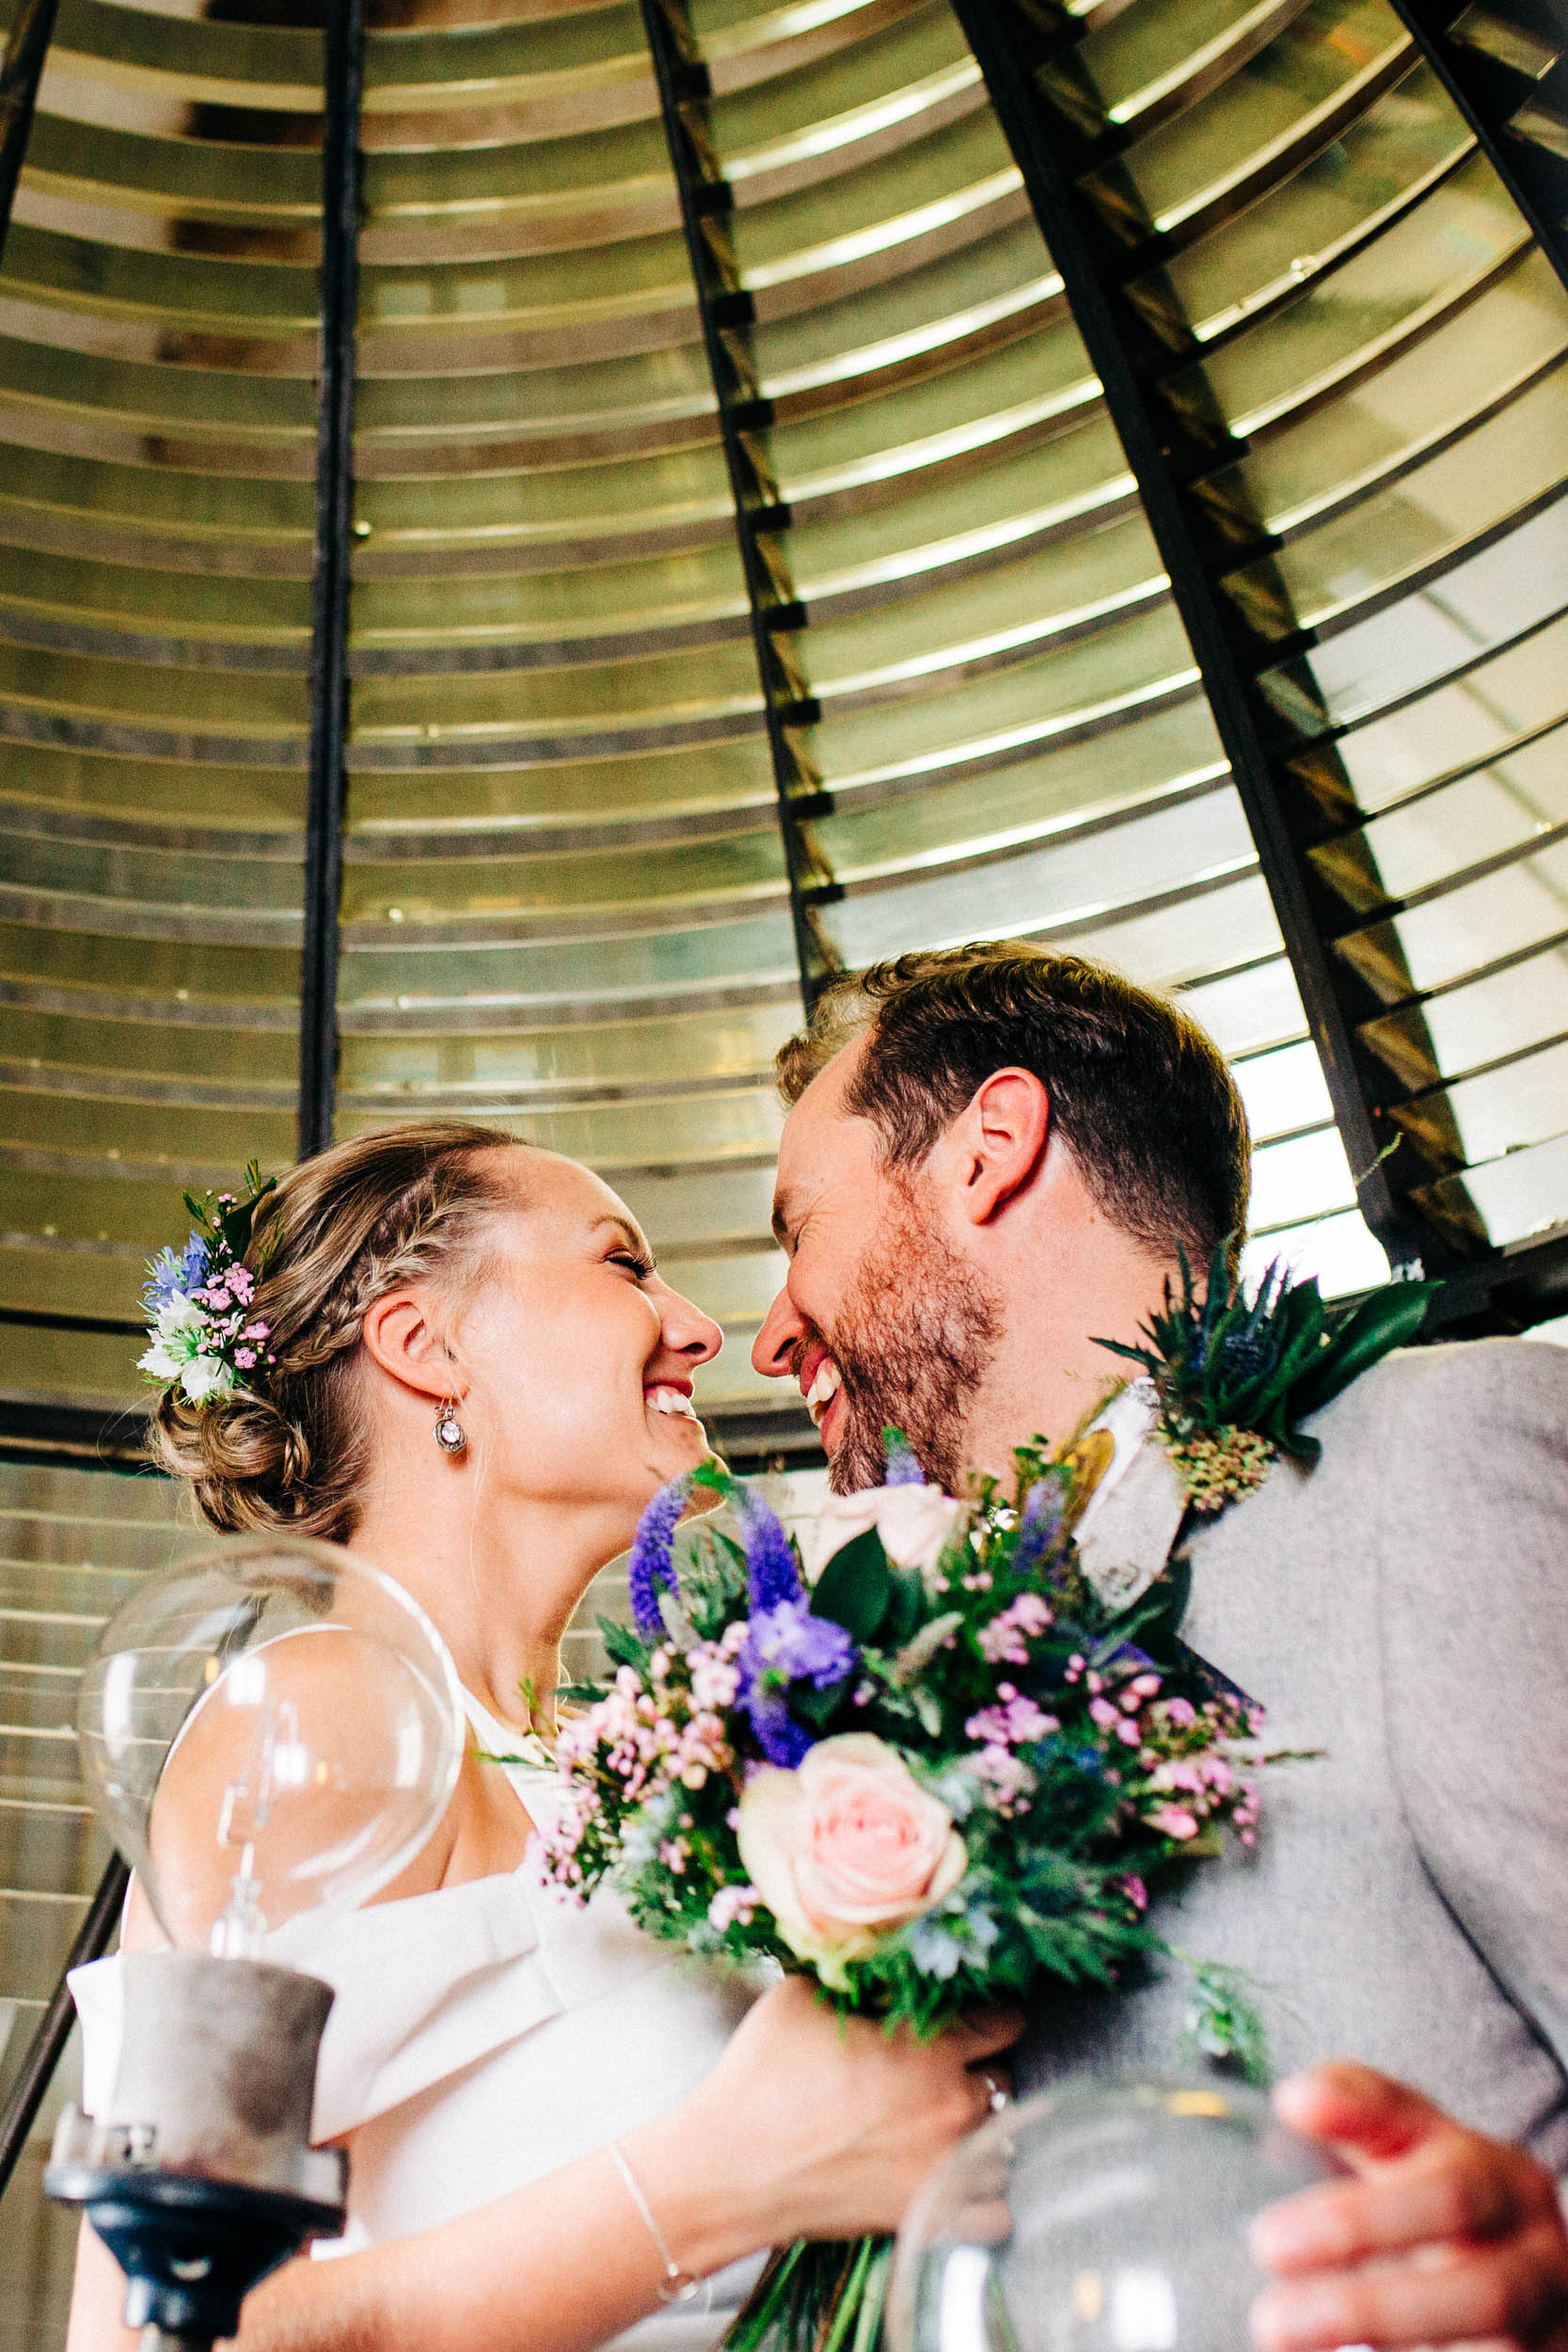 Alex_Sedgmond_Photography-MonkNashLighthouse-WeddingPhotography-Penny&Mike-167.jpg